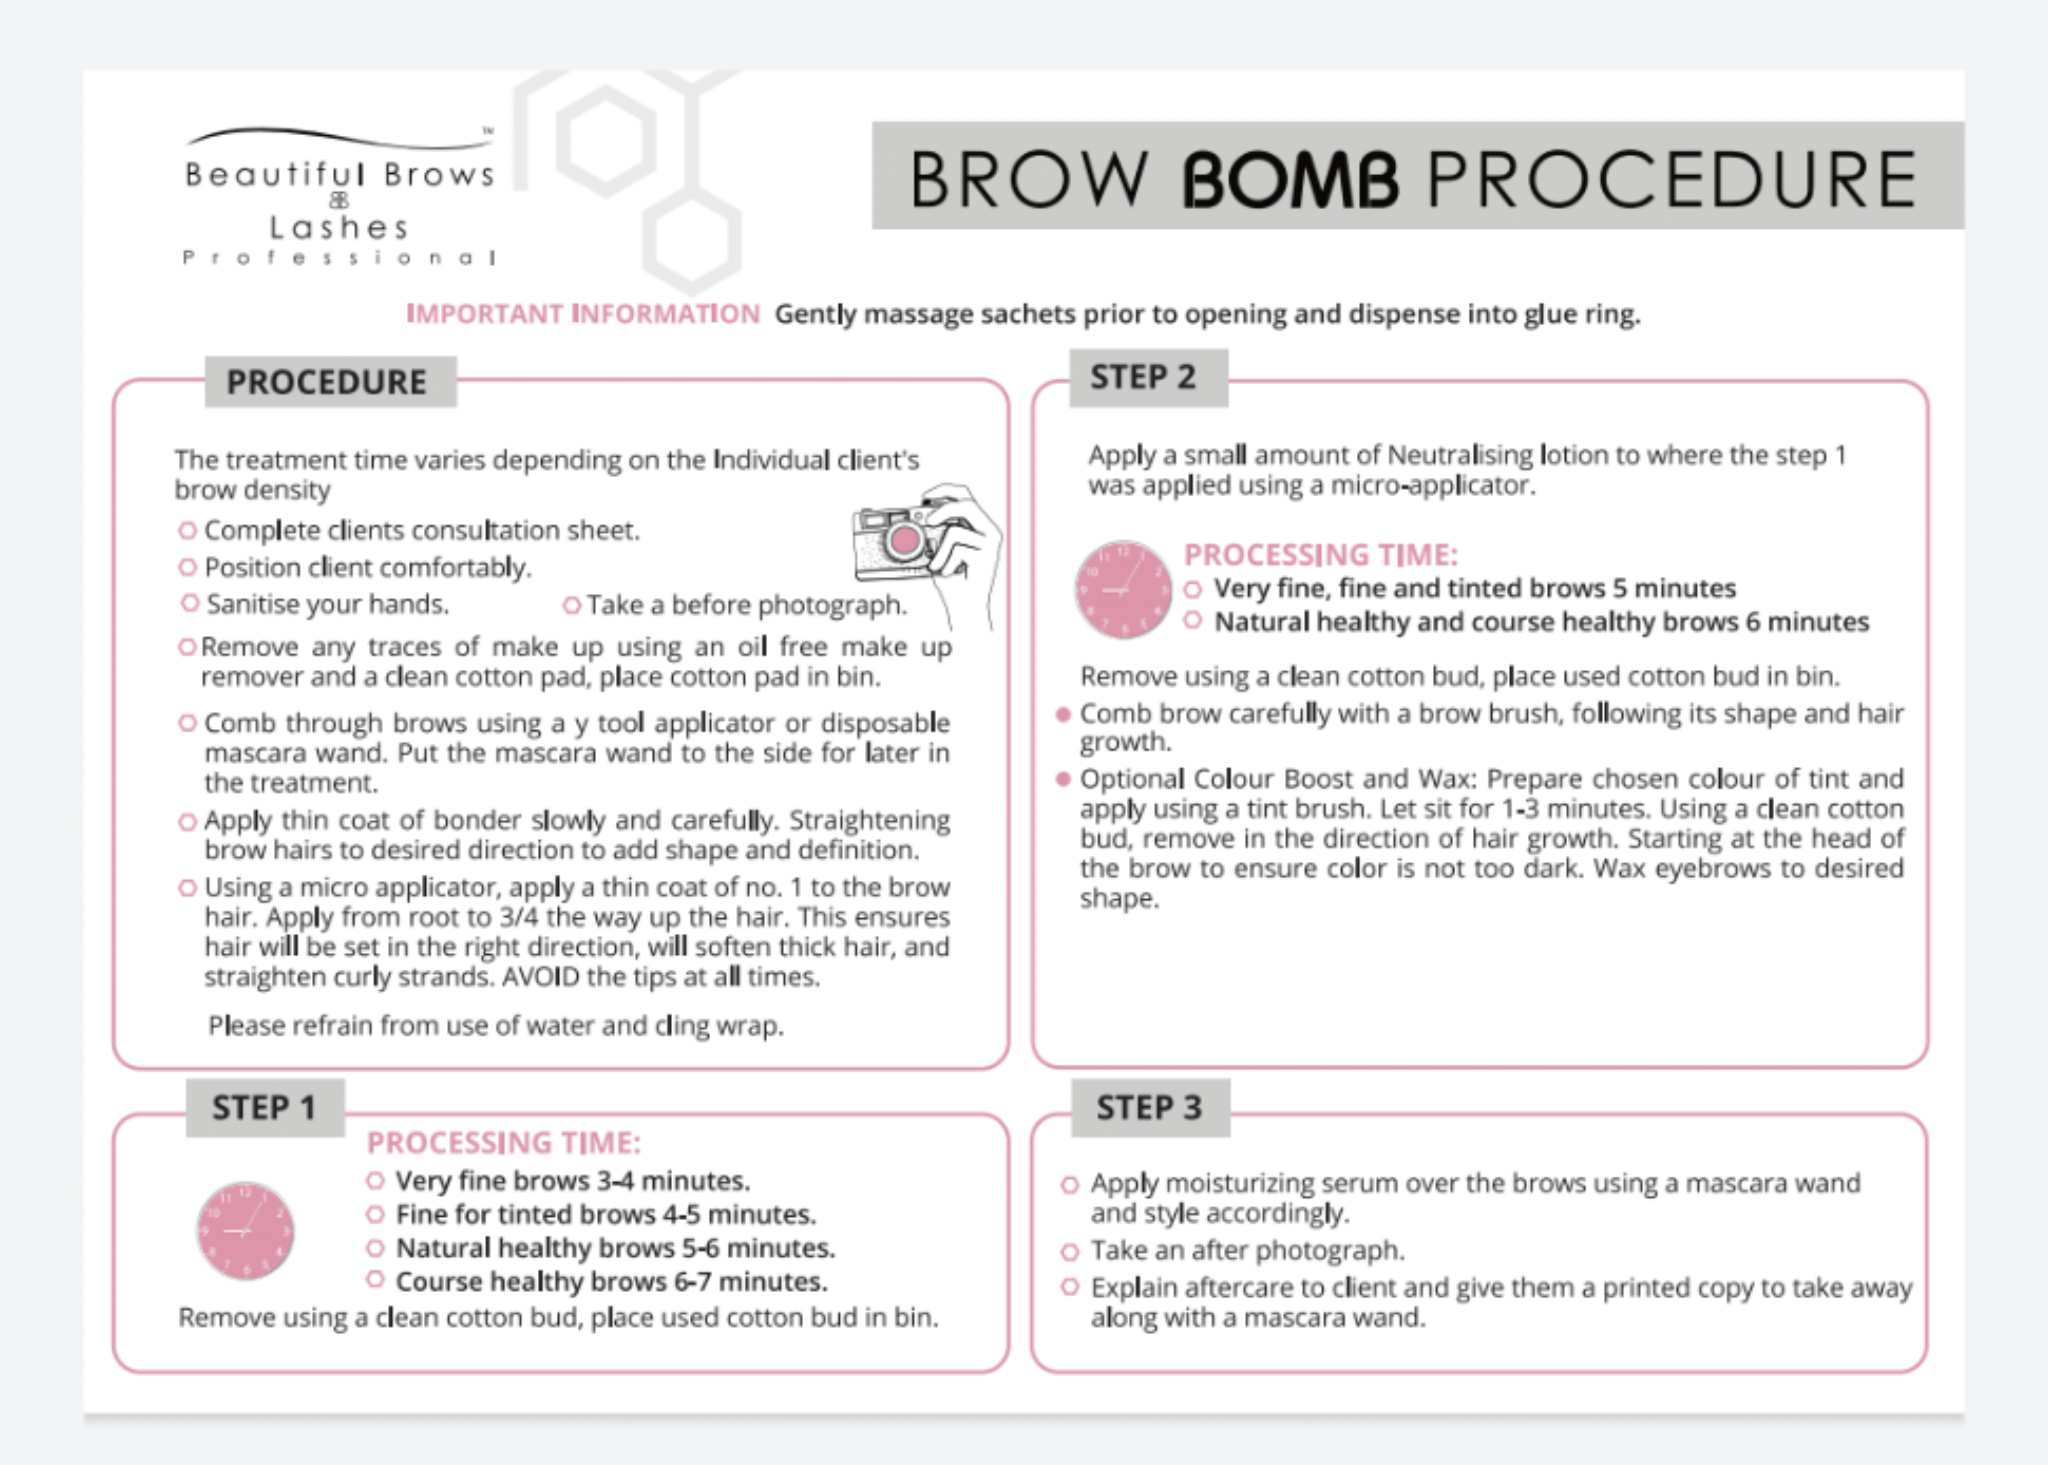 FREE Sample of BROW BOMB